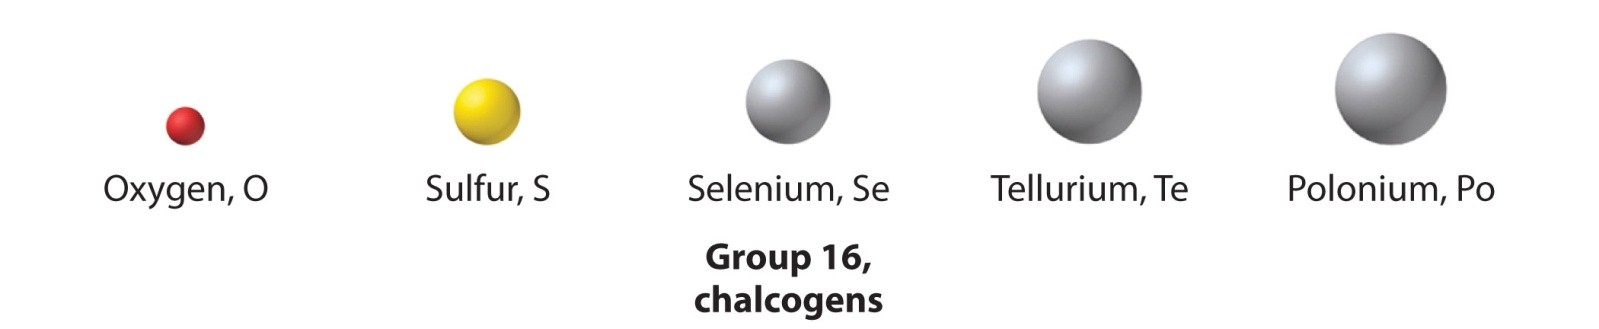 Elements of group 16